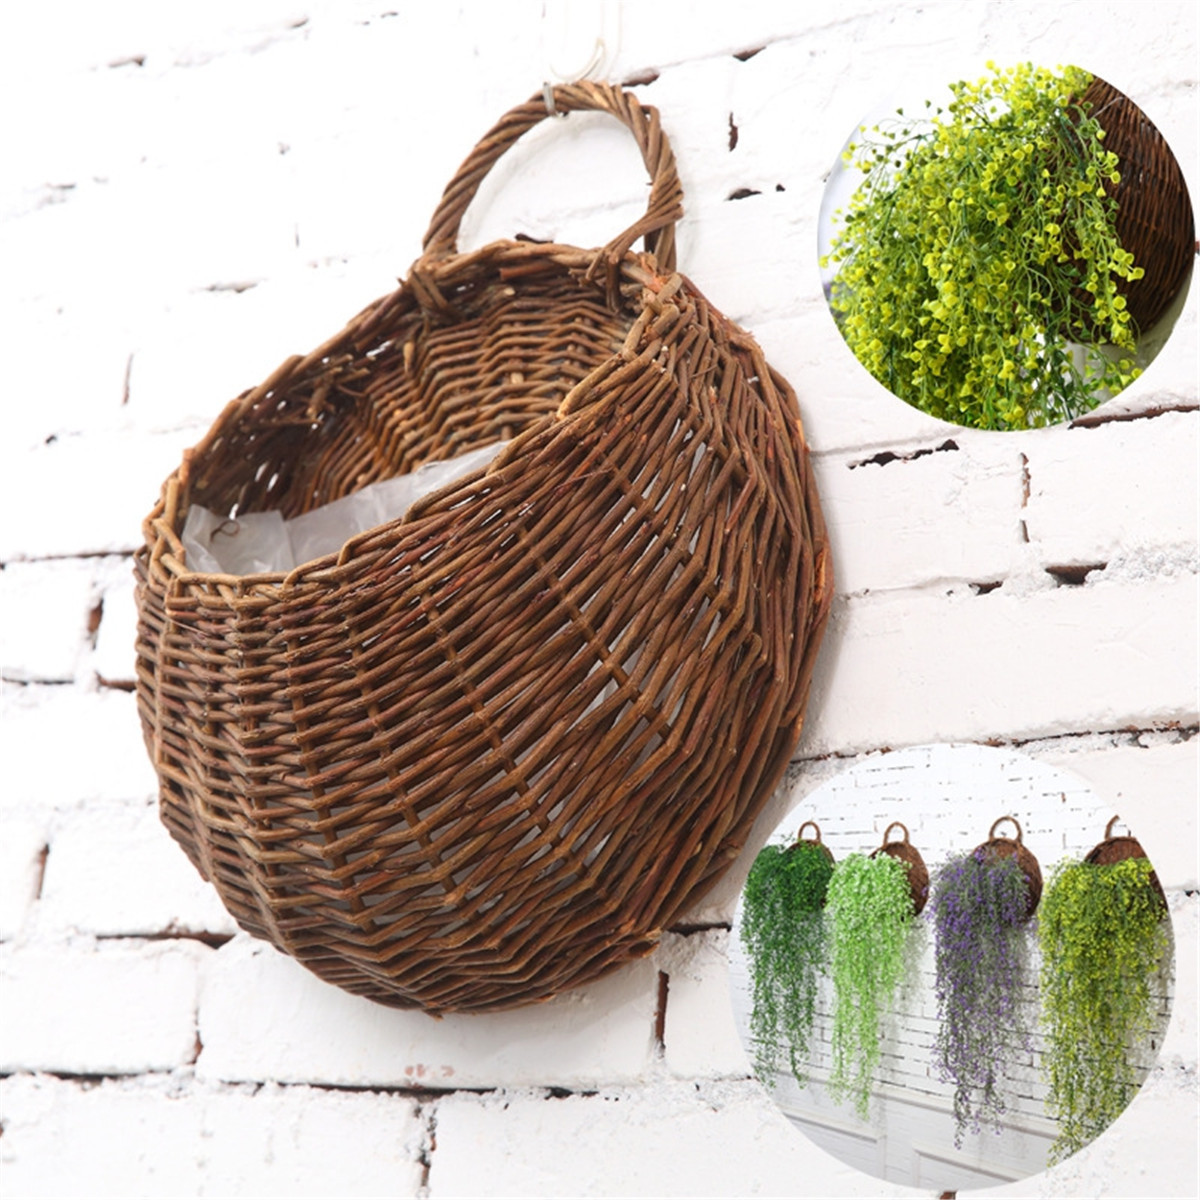 Wicker Wall Hanging Flower Pocket Basket Garden Outdoor ... on Decorative Wall Sconces For Flowers Hanging Baskets Delivery id=78272